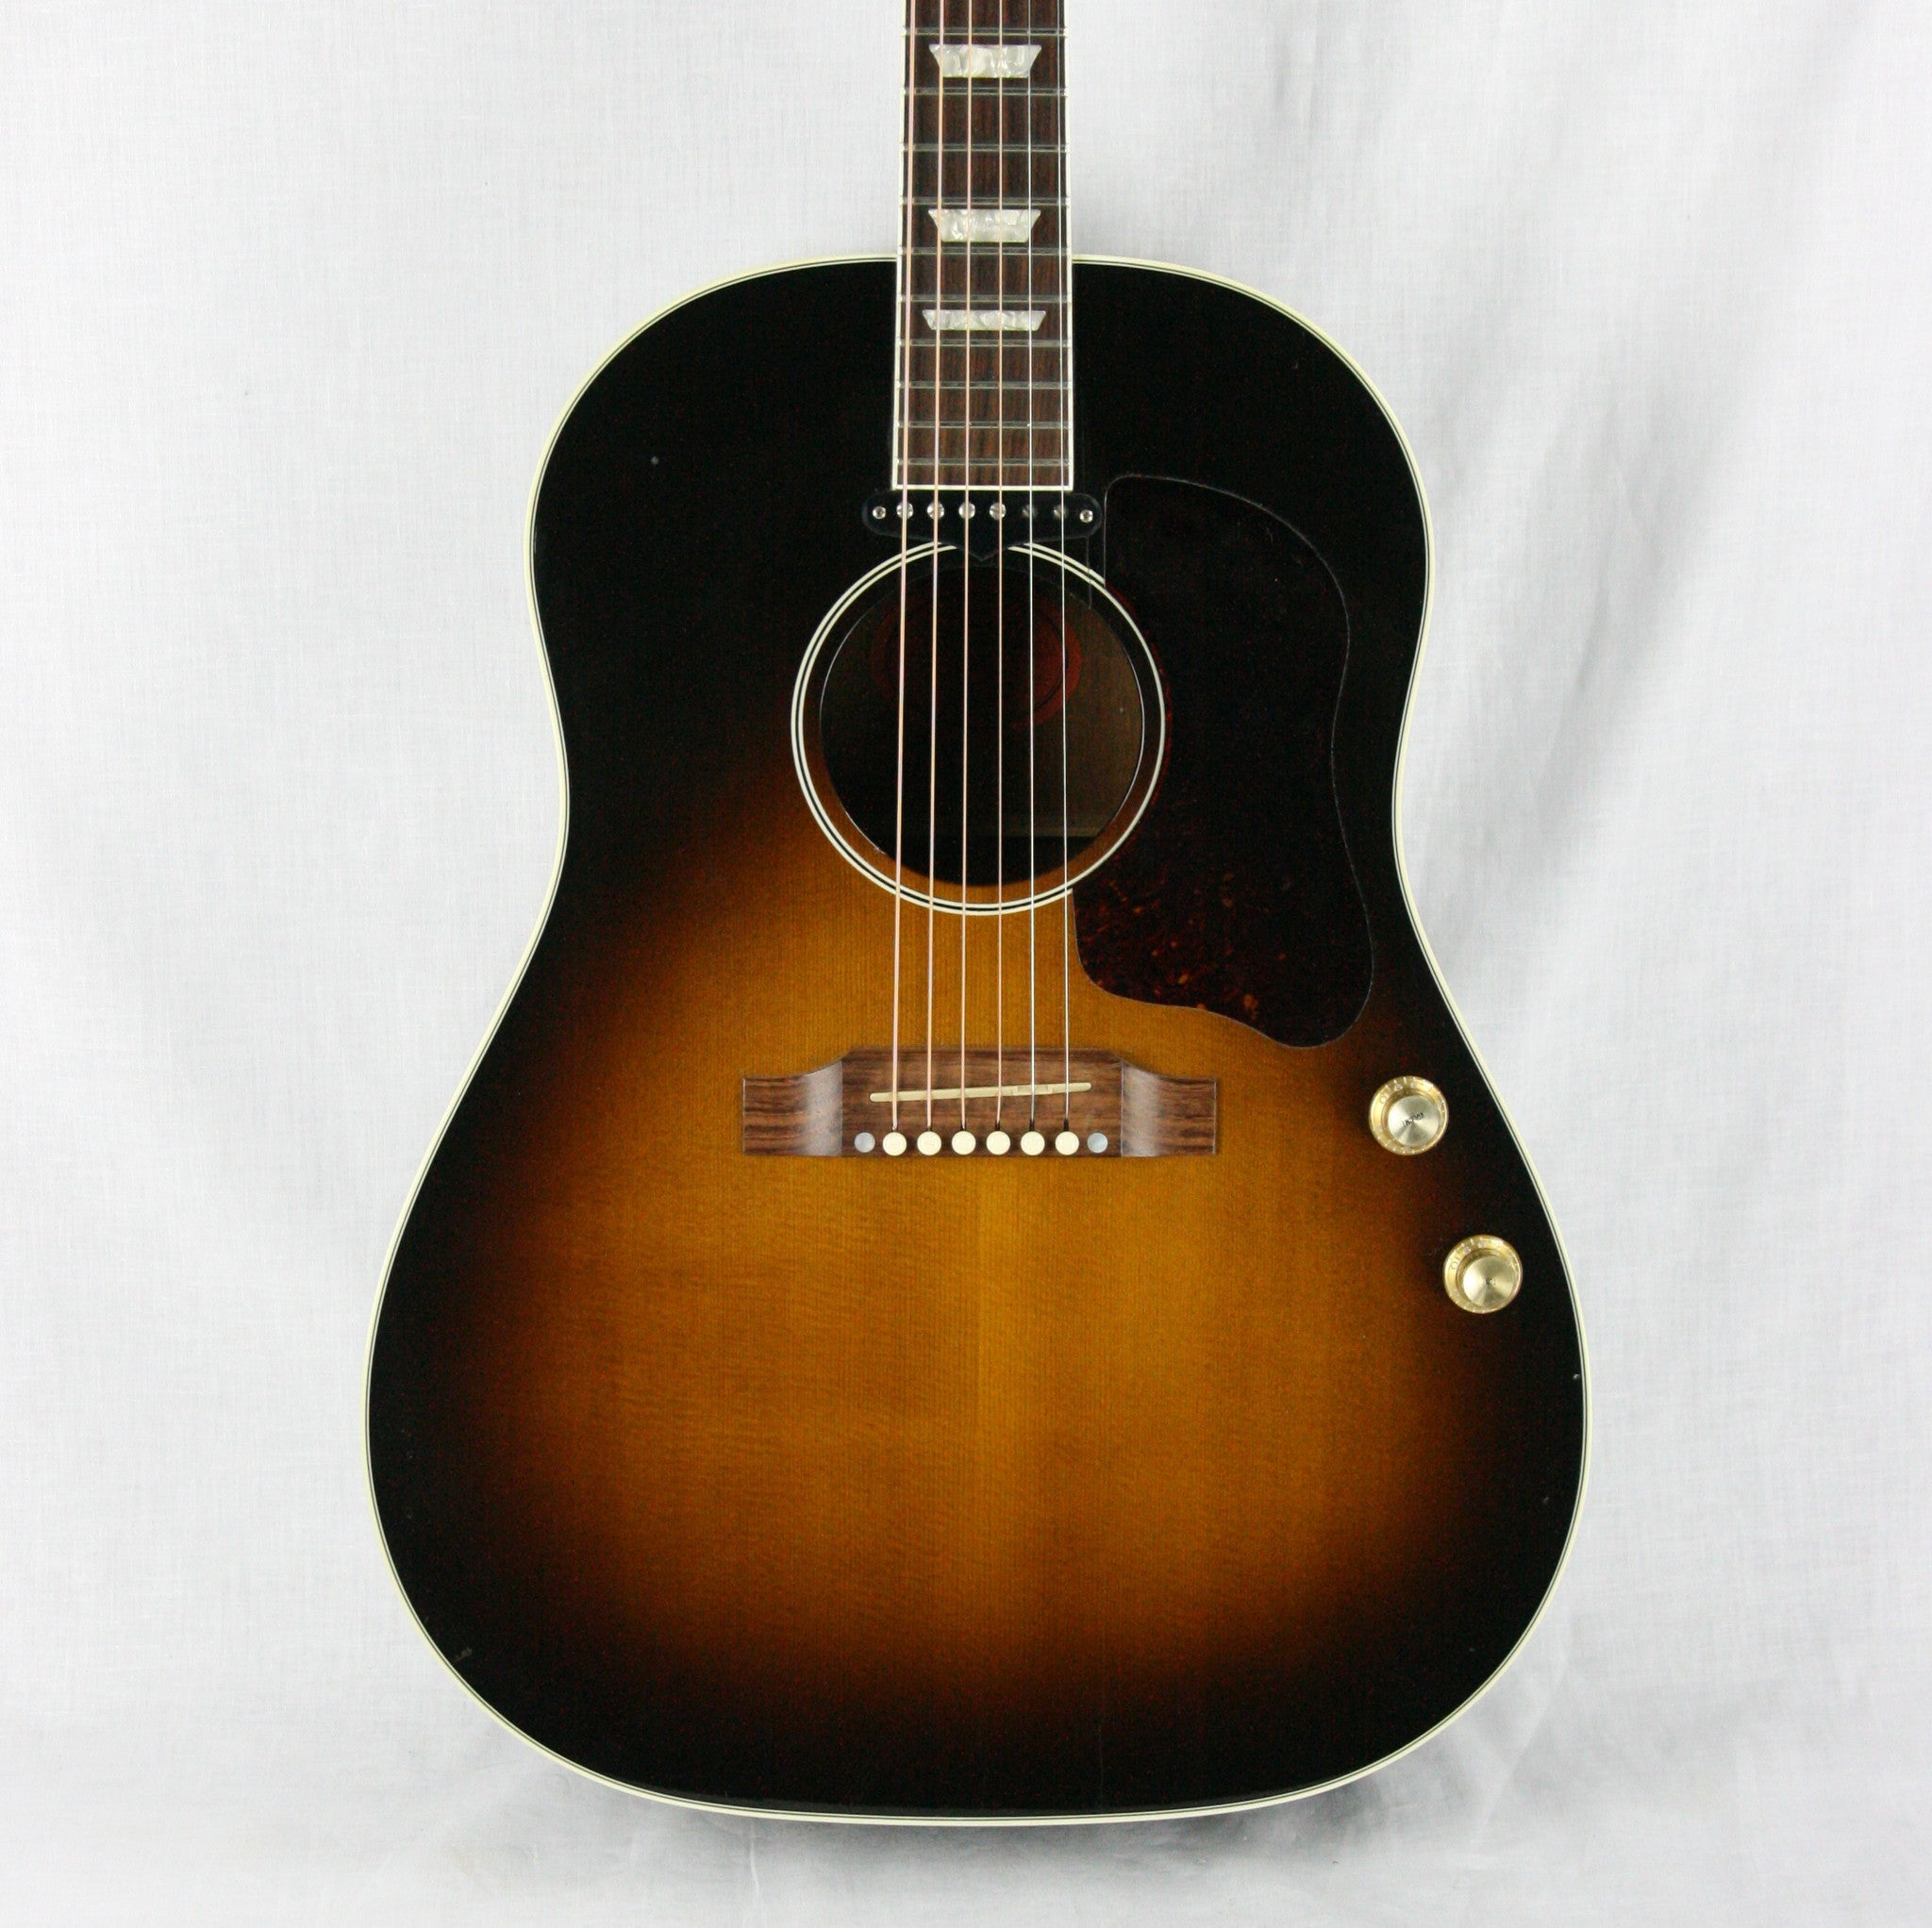 1999 Gibson J-160E Acoustic Electric Guitar Sunburst w/ case! John Lennon Beatles, plays/sounds great!